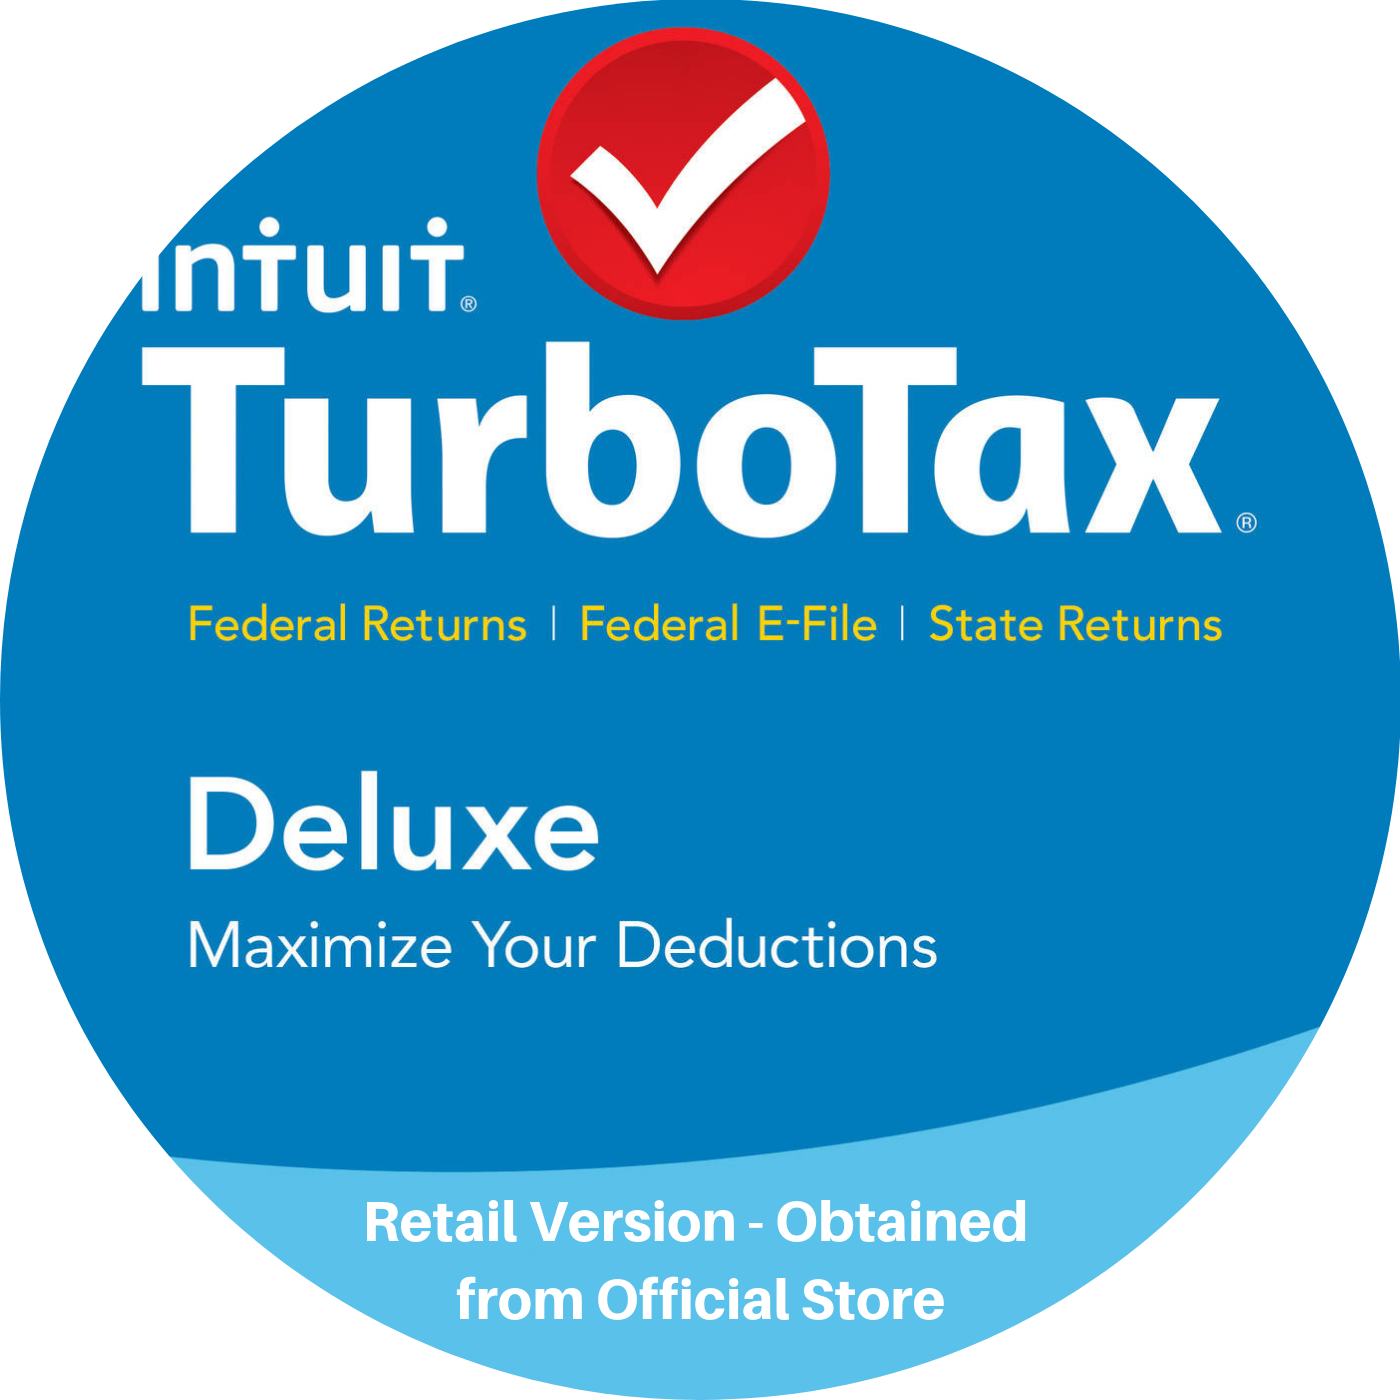 Intuit TurboTax Deluxe 2018 Returns State Federal E-File